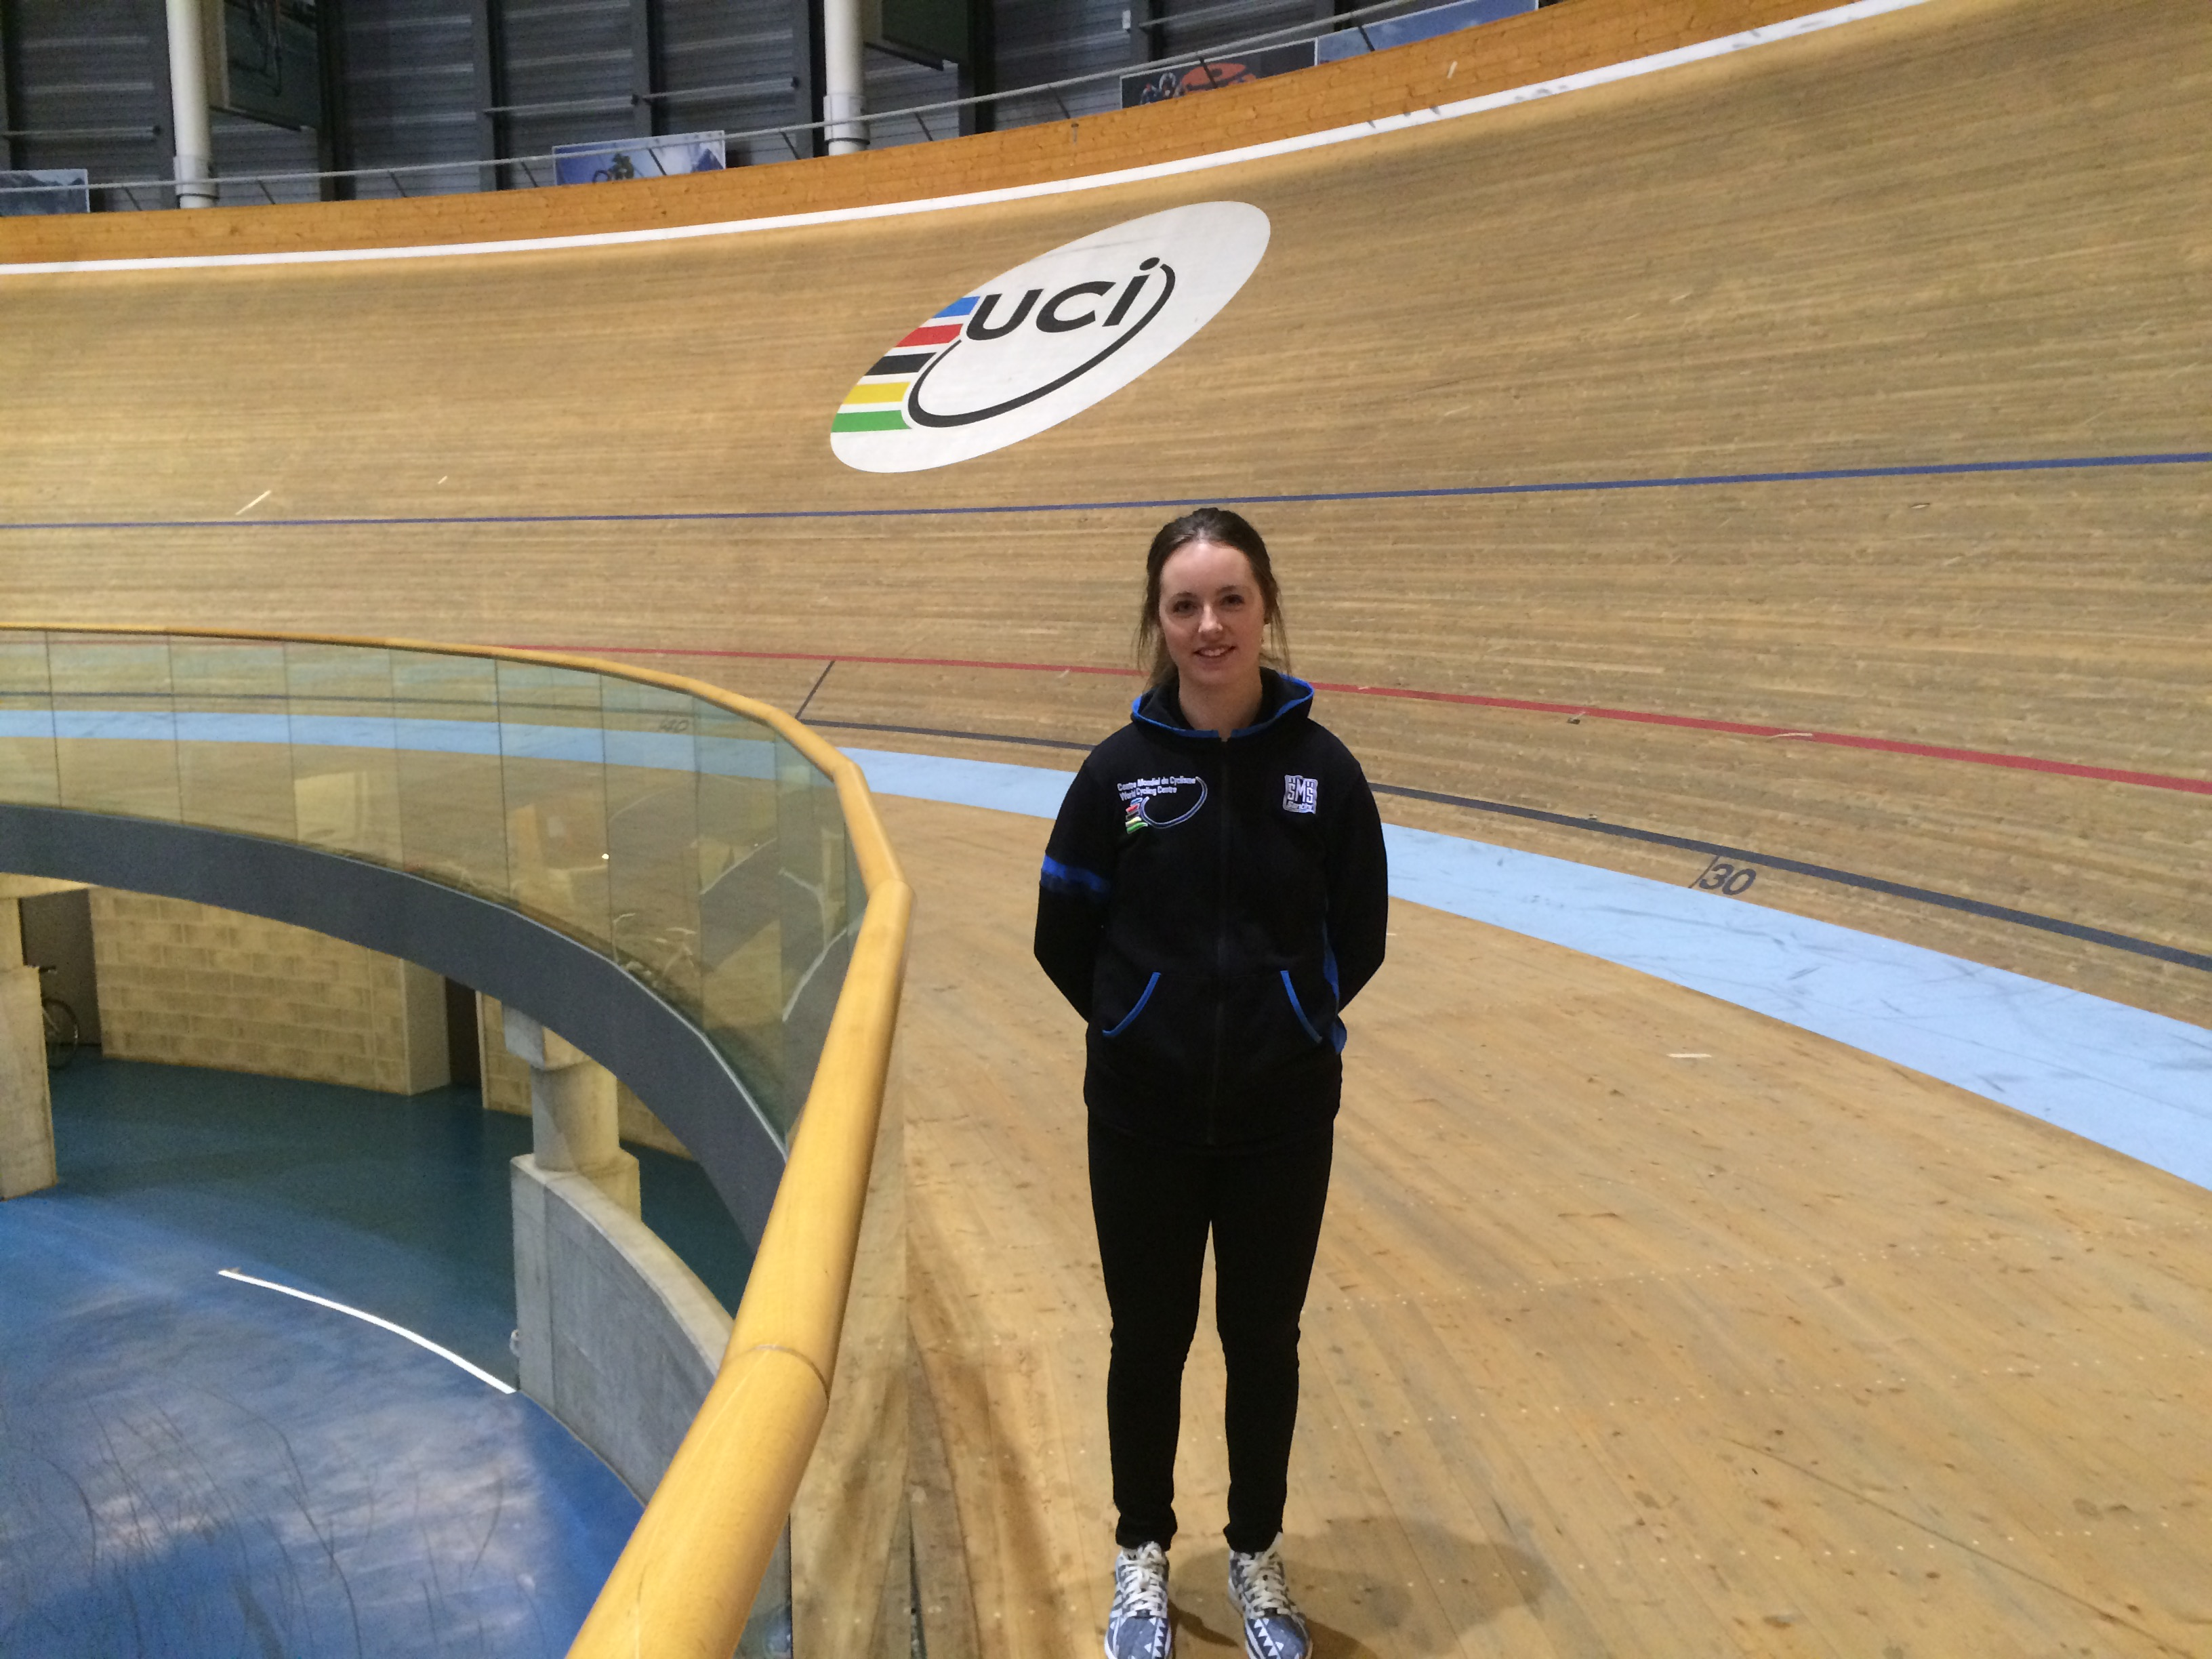 Lauren Gourlay, Bachelor of Science (Hons) Sports Coaching & Performance (WD186)